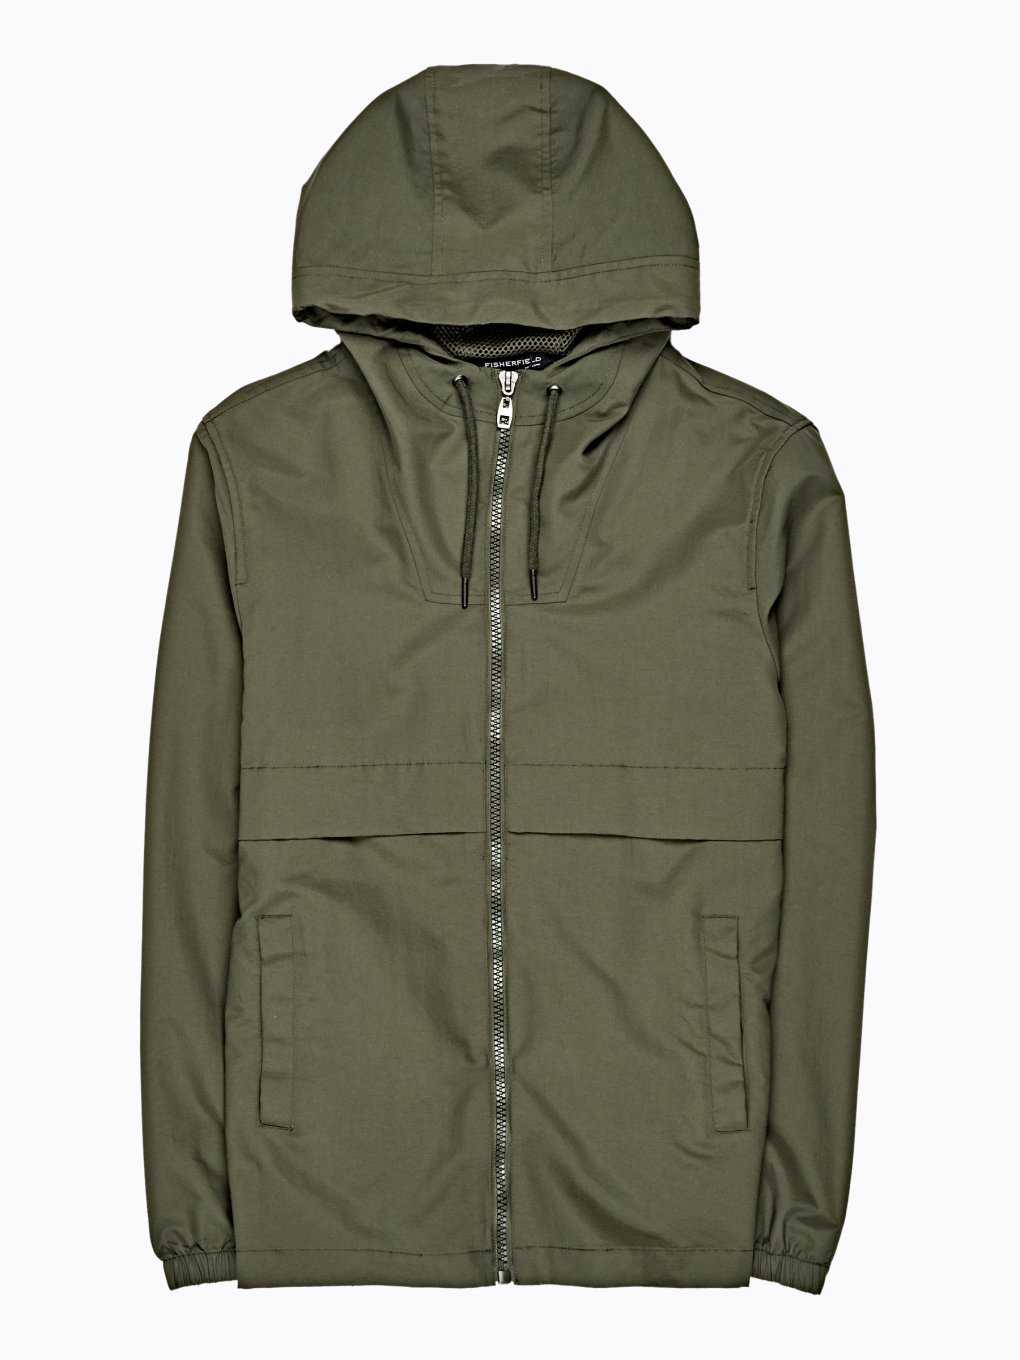 NYLON JACKET WITH SIDE ZIPPERS